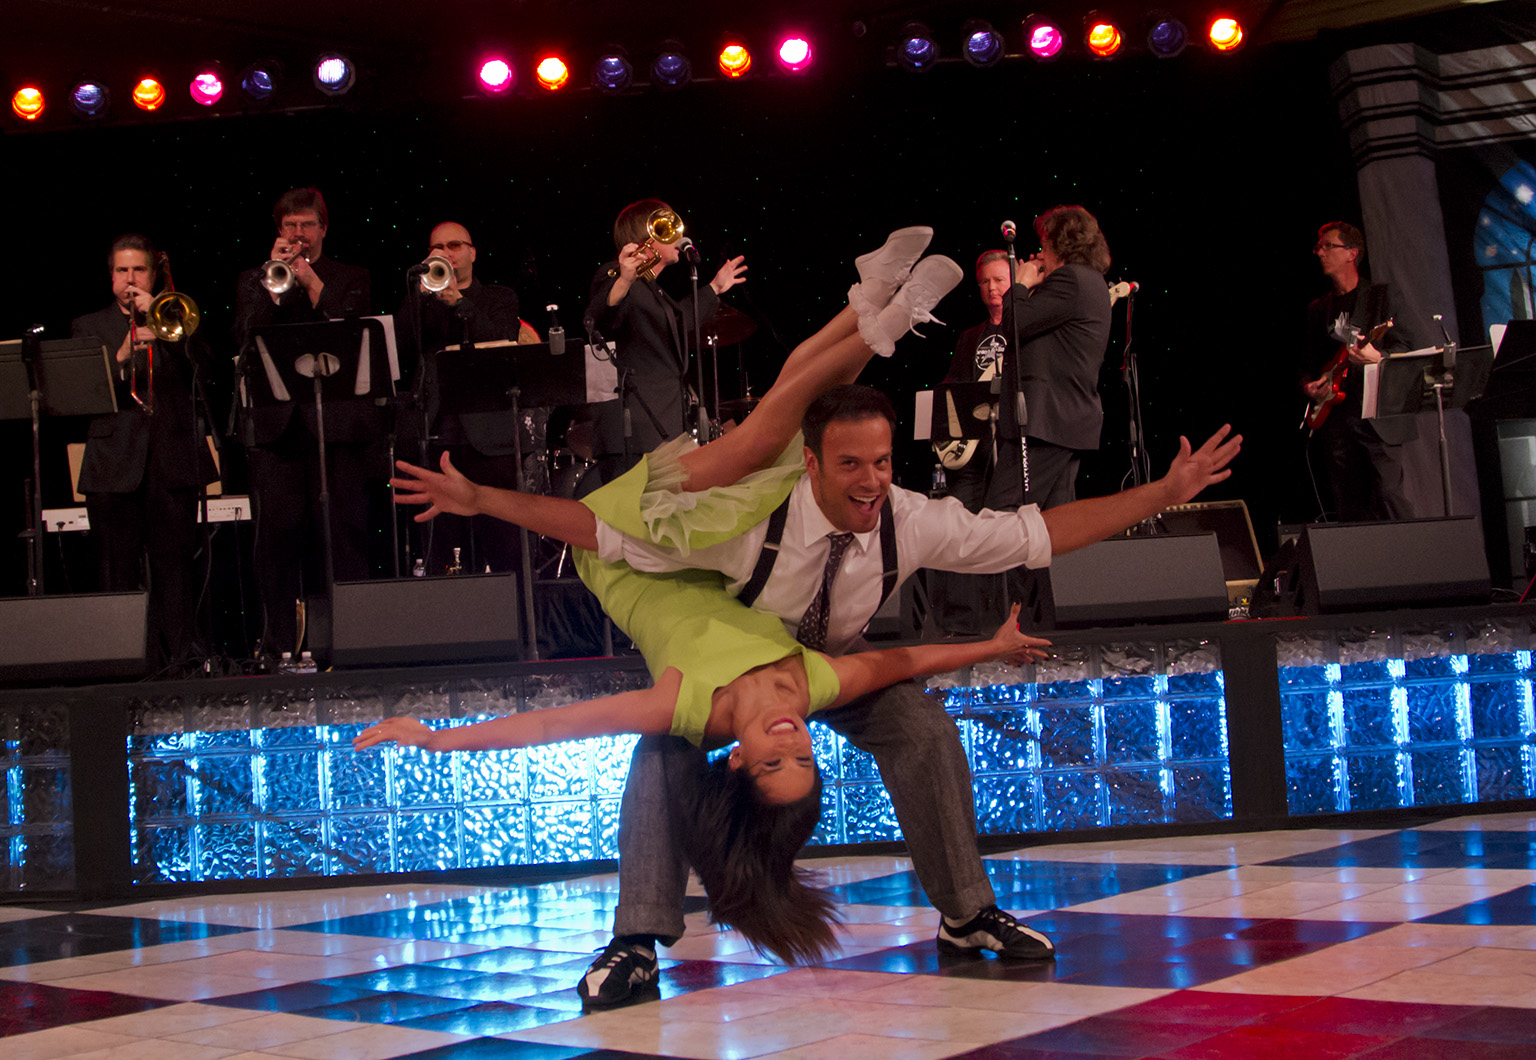 John-Miller-Events-Dancers-01